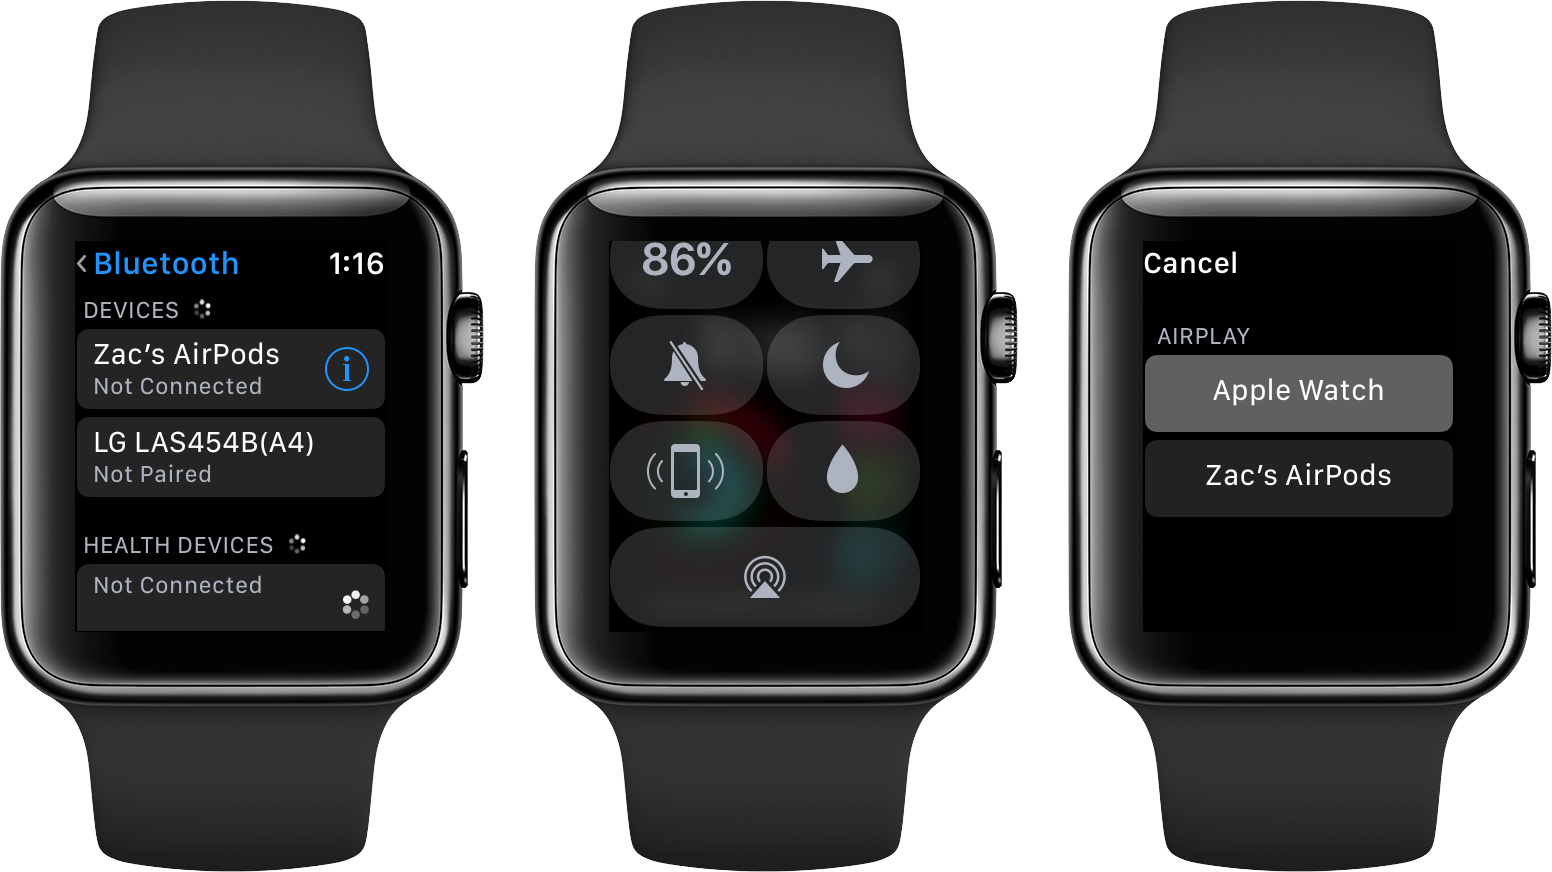 How to stream music on apple watch 3 without iphone